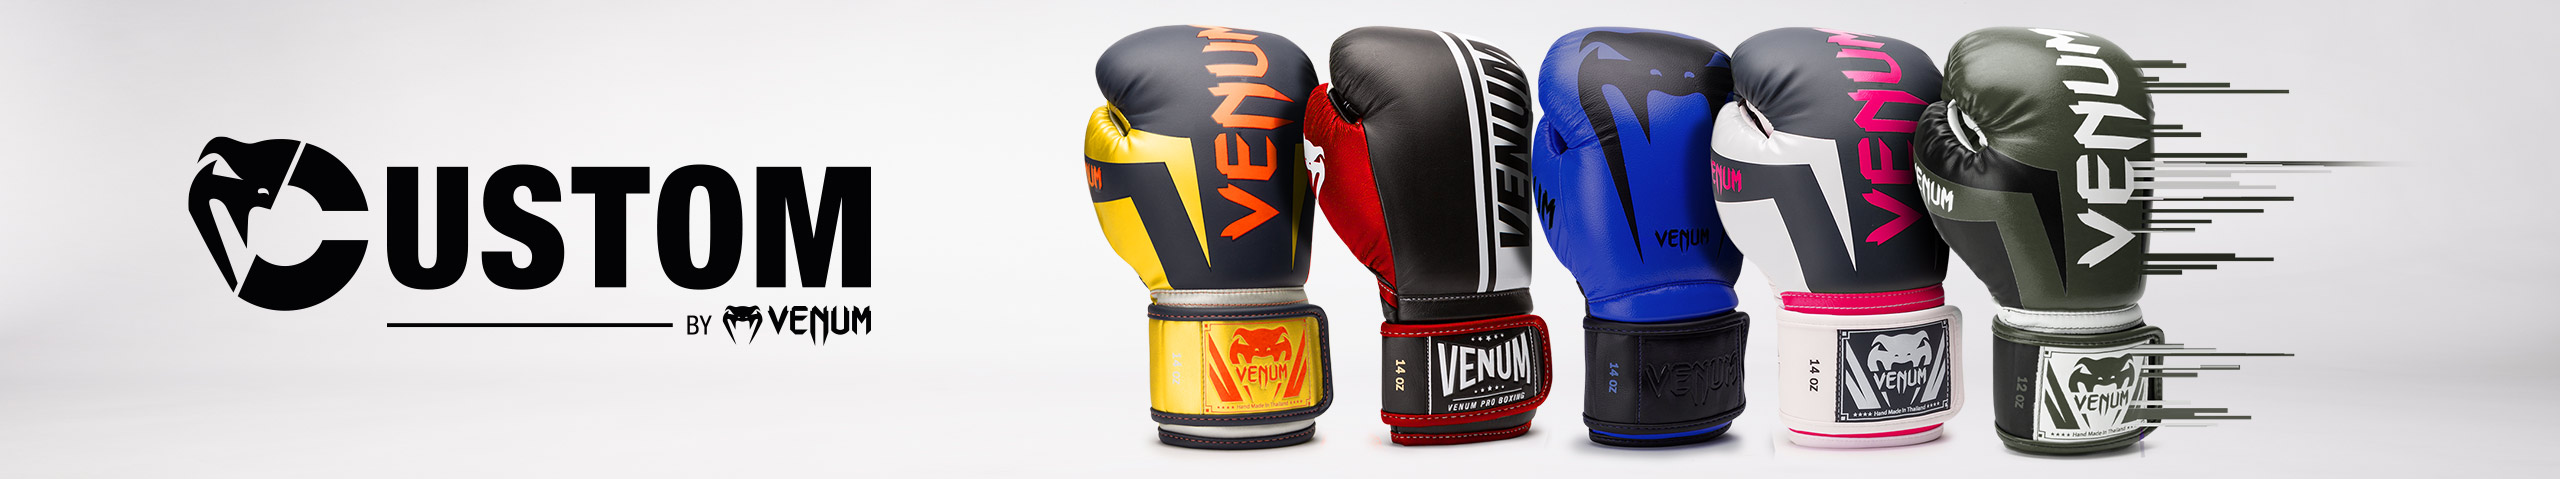 Muay Thai Glove : all Venum Boxing Gloves for Muay Thai - Venum.com Europe